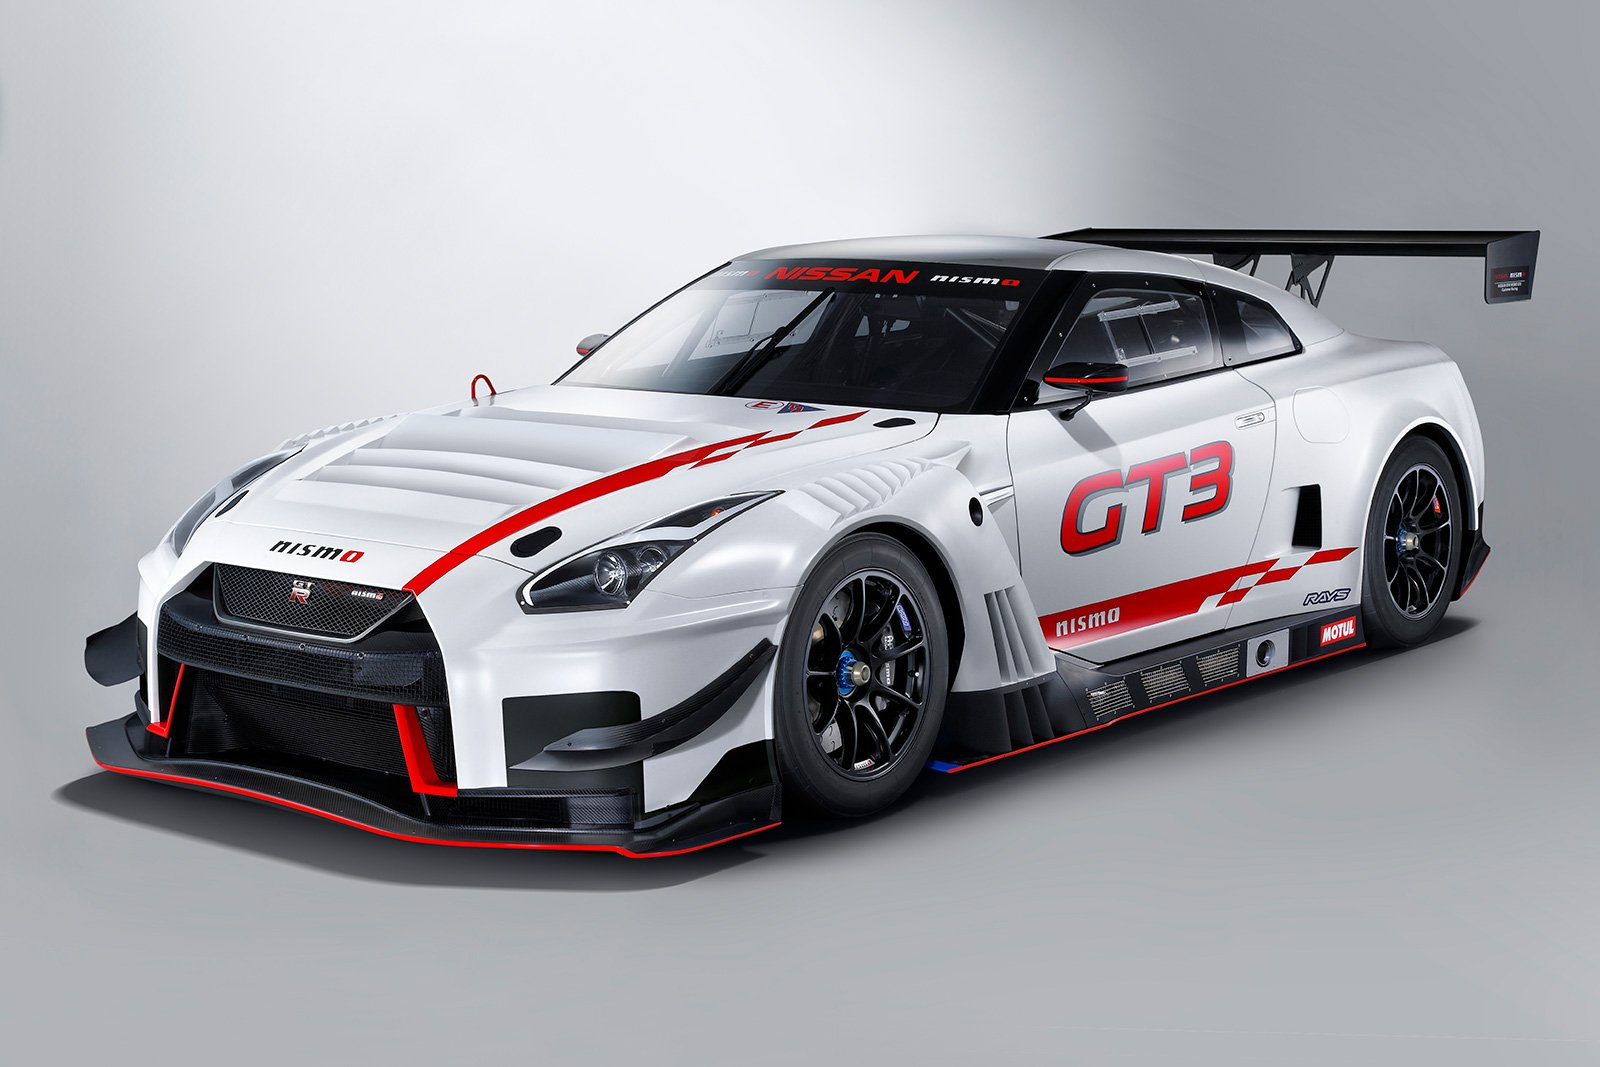 2018 Nissan Gt R Nismo Gt3 Race Car Costs Half A Million